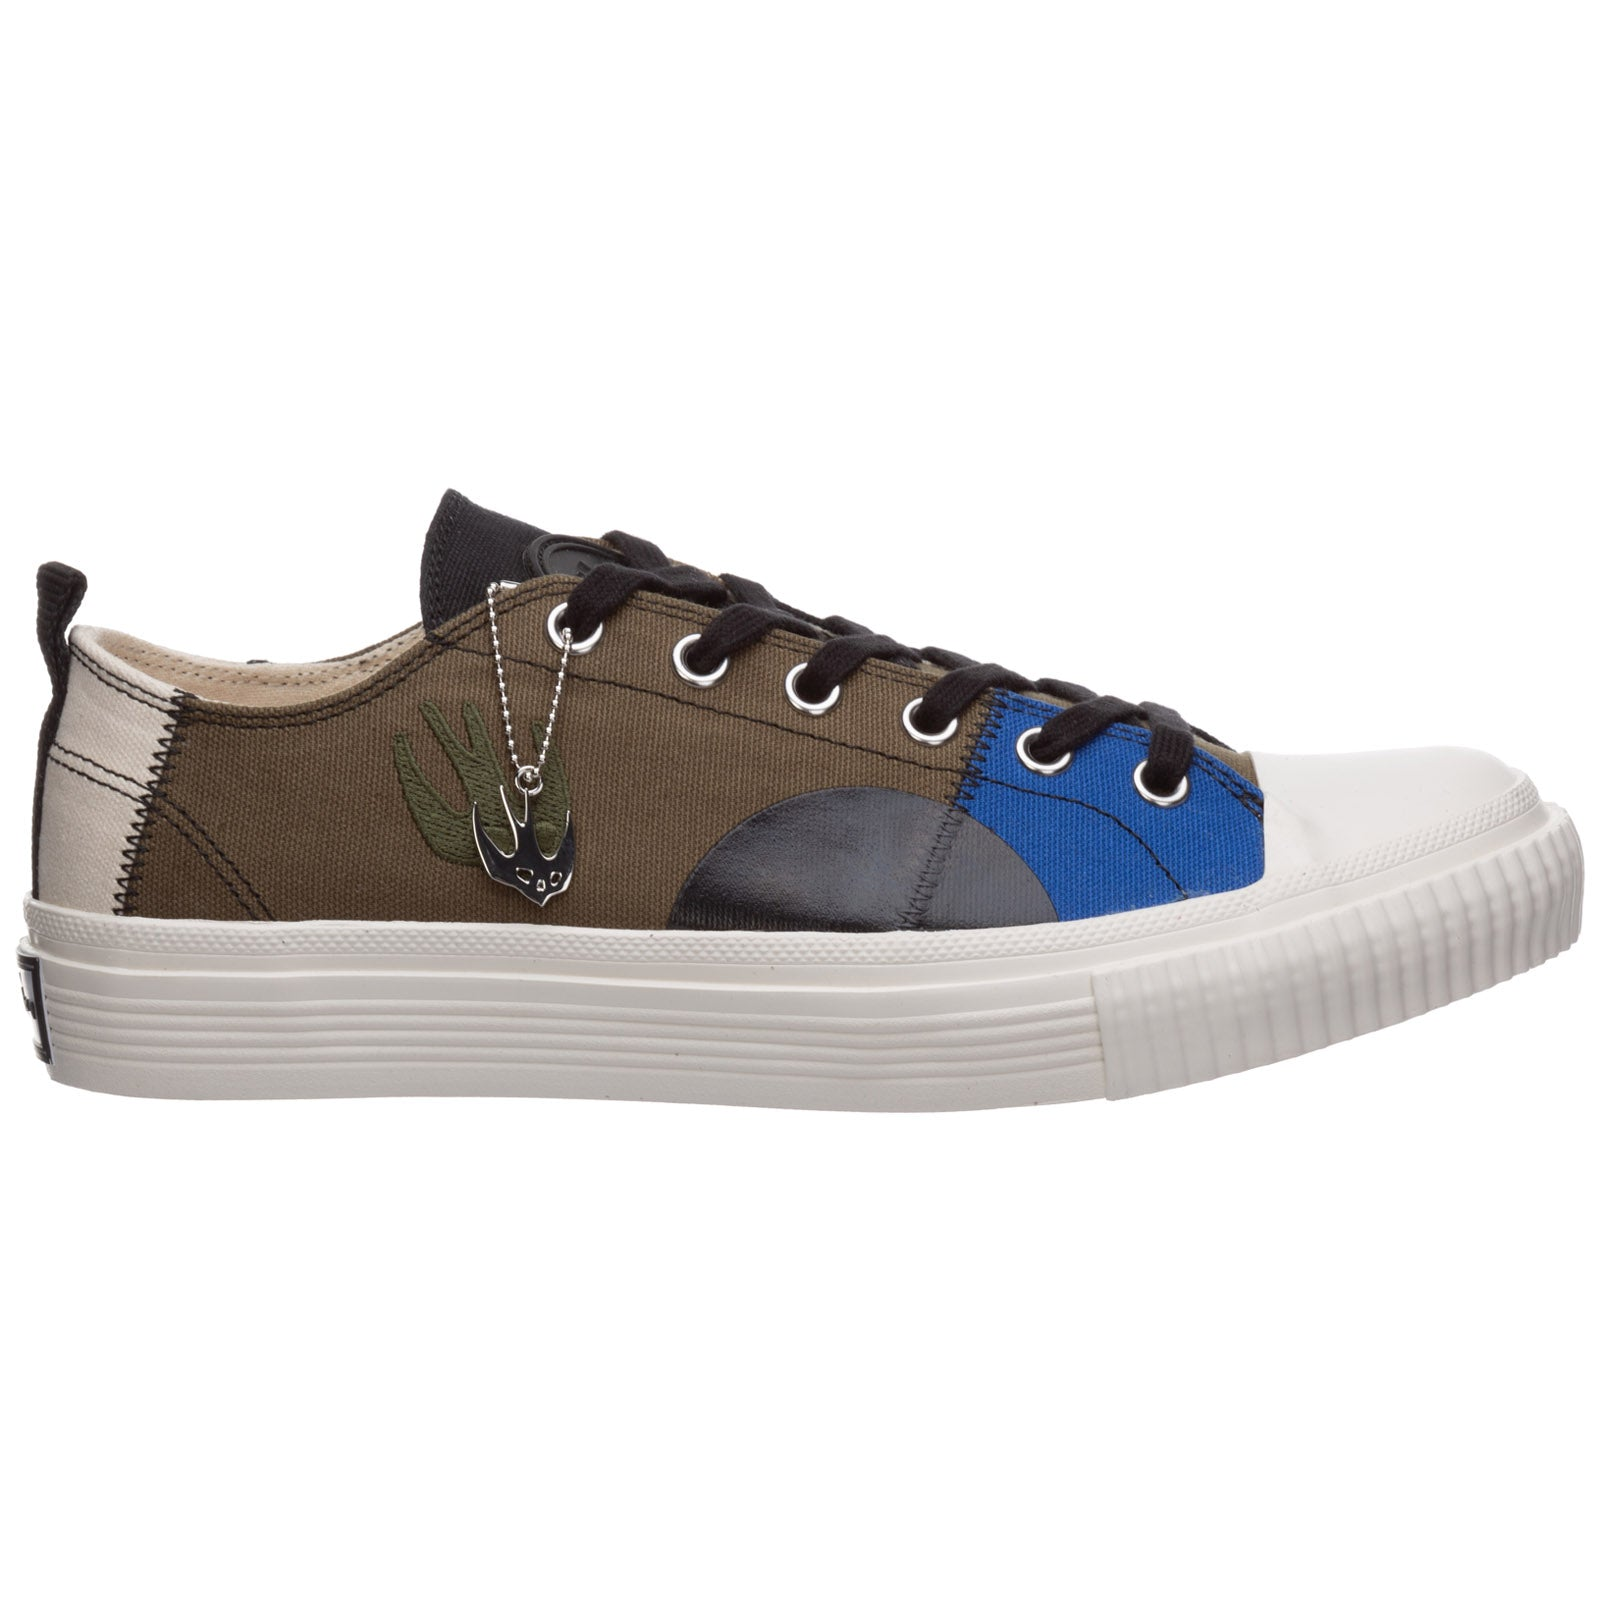 Mcq By Alexander Mcqueen MCQ ALEXANDER MCQUEEN SWALLOW EMBROIDERED SNEAKERS